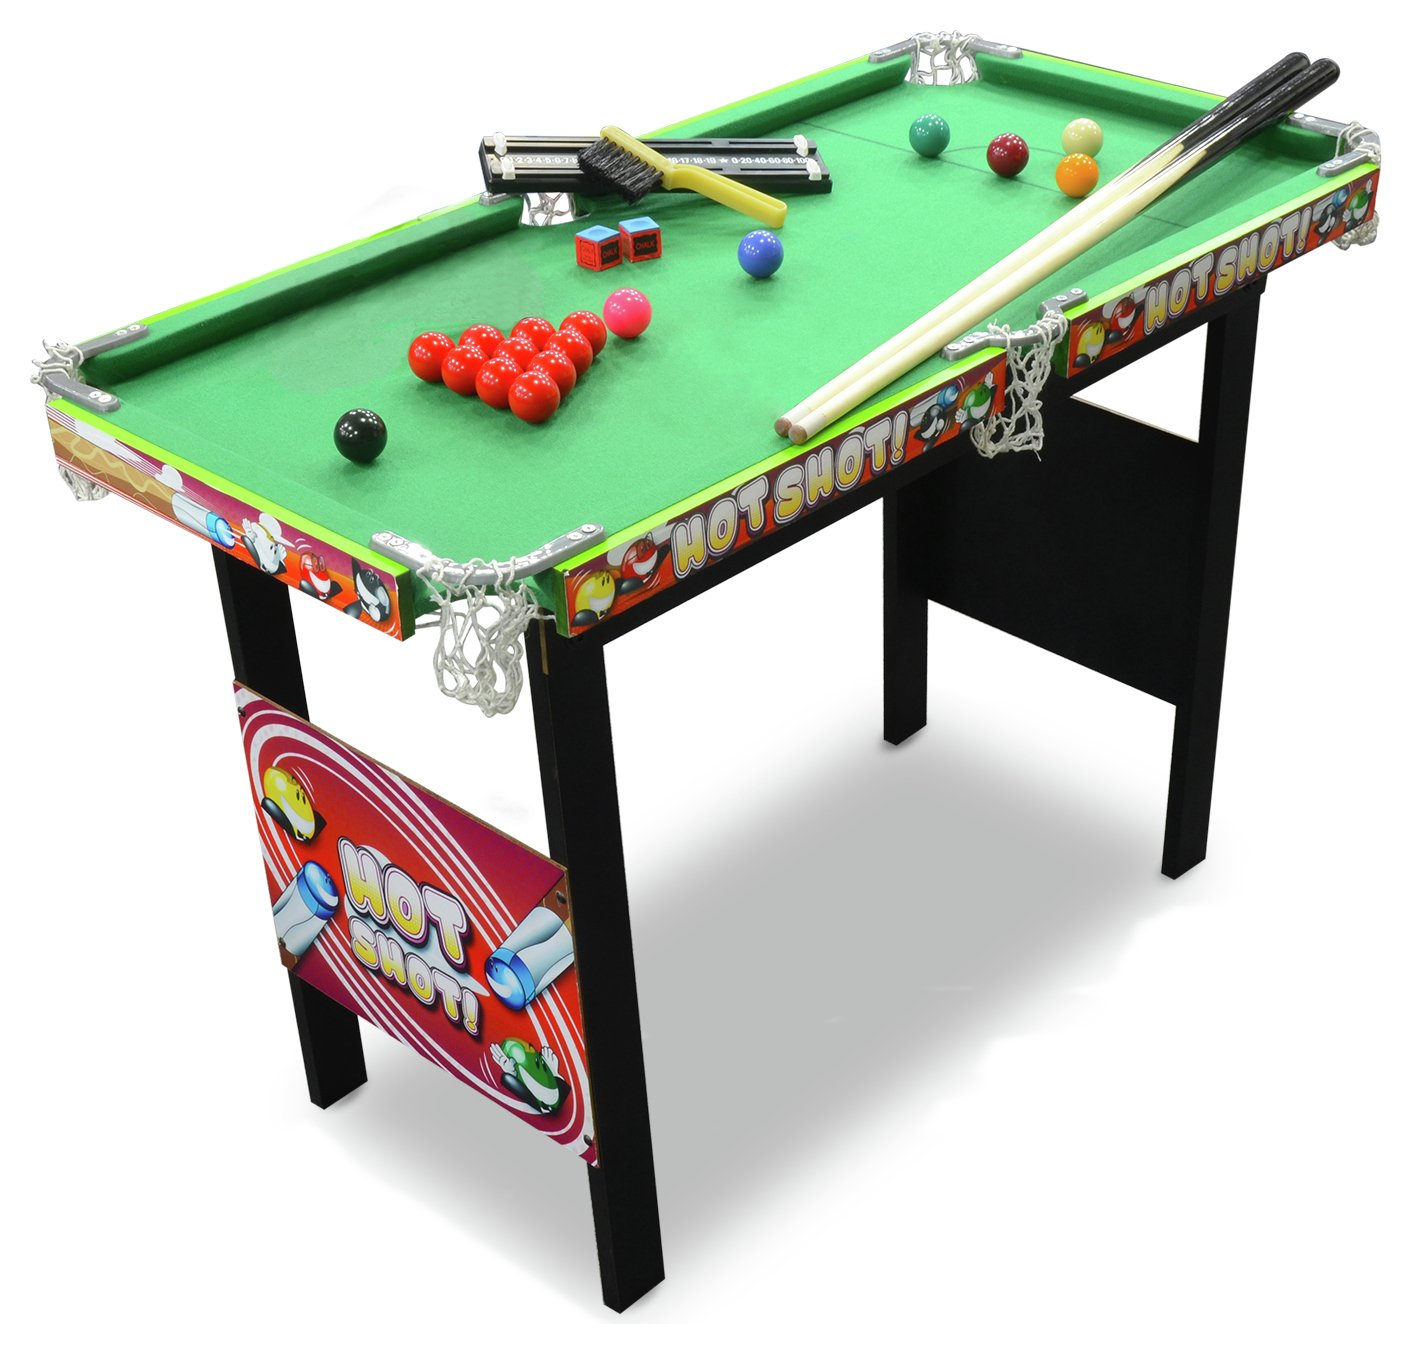 Chad valley 3ft snooker pool game table gay times for Epl table 99 00